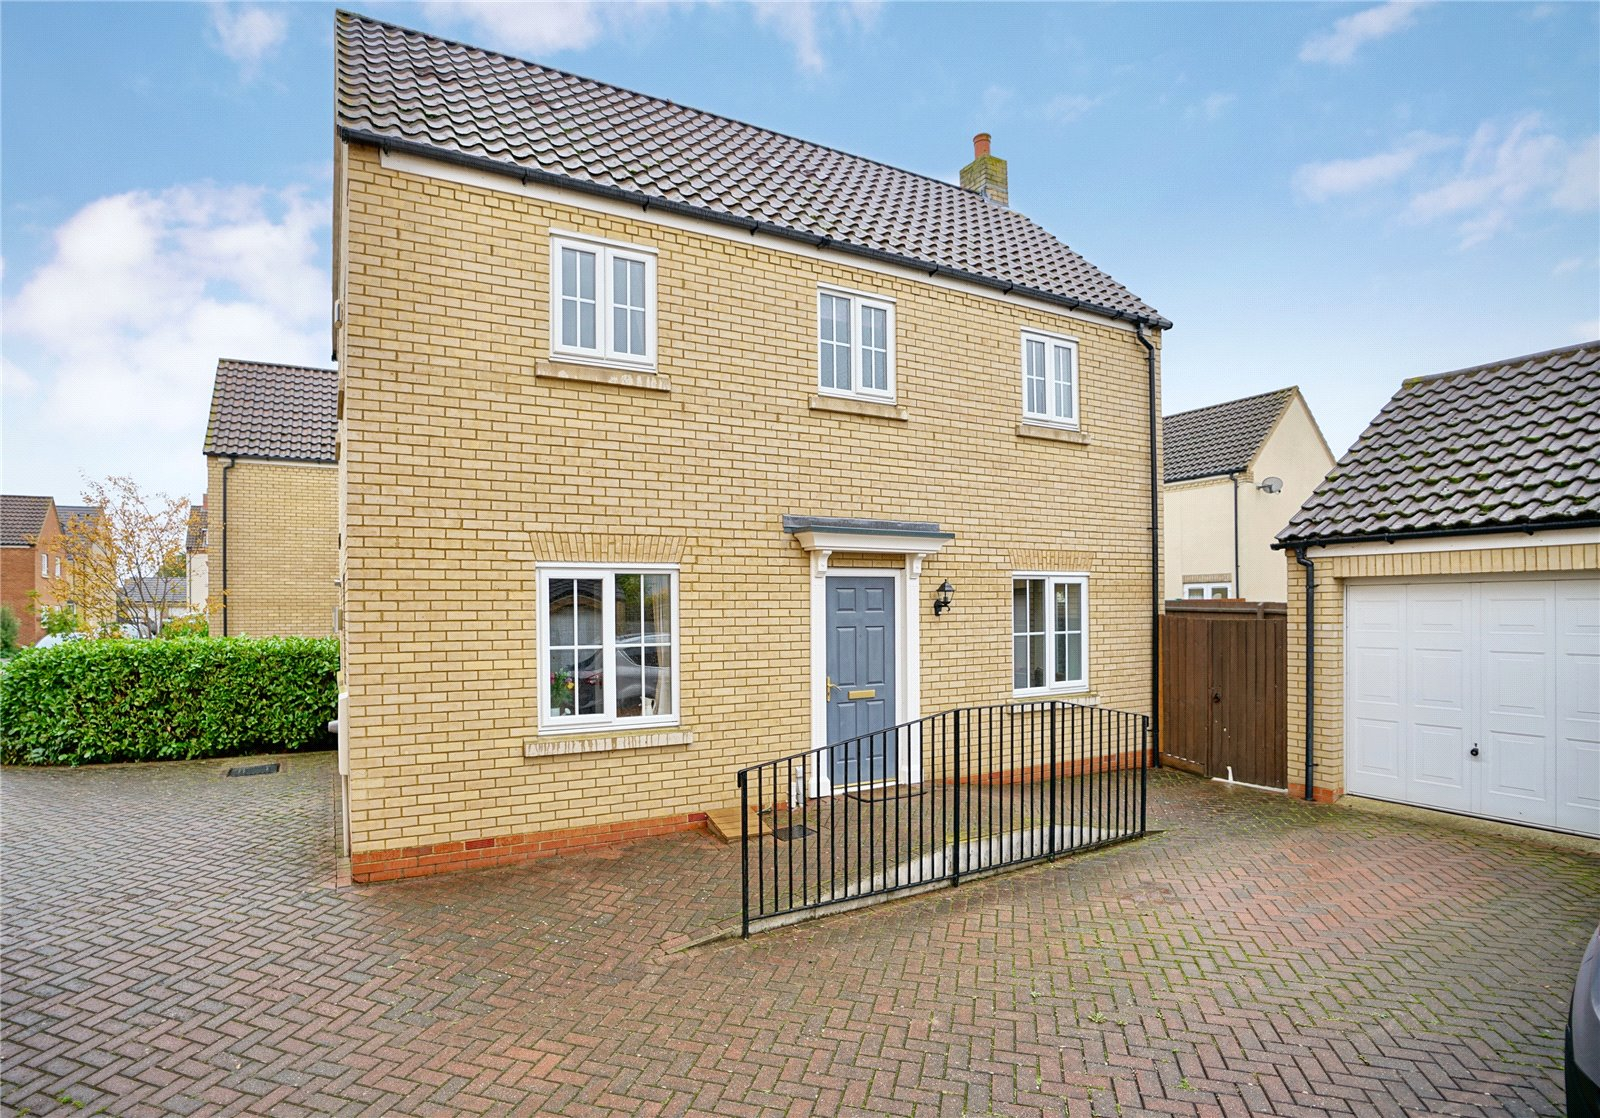 3 bed house for sale in Godmanchester, PE29 2RW, PE29